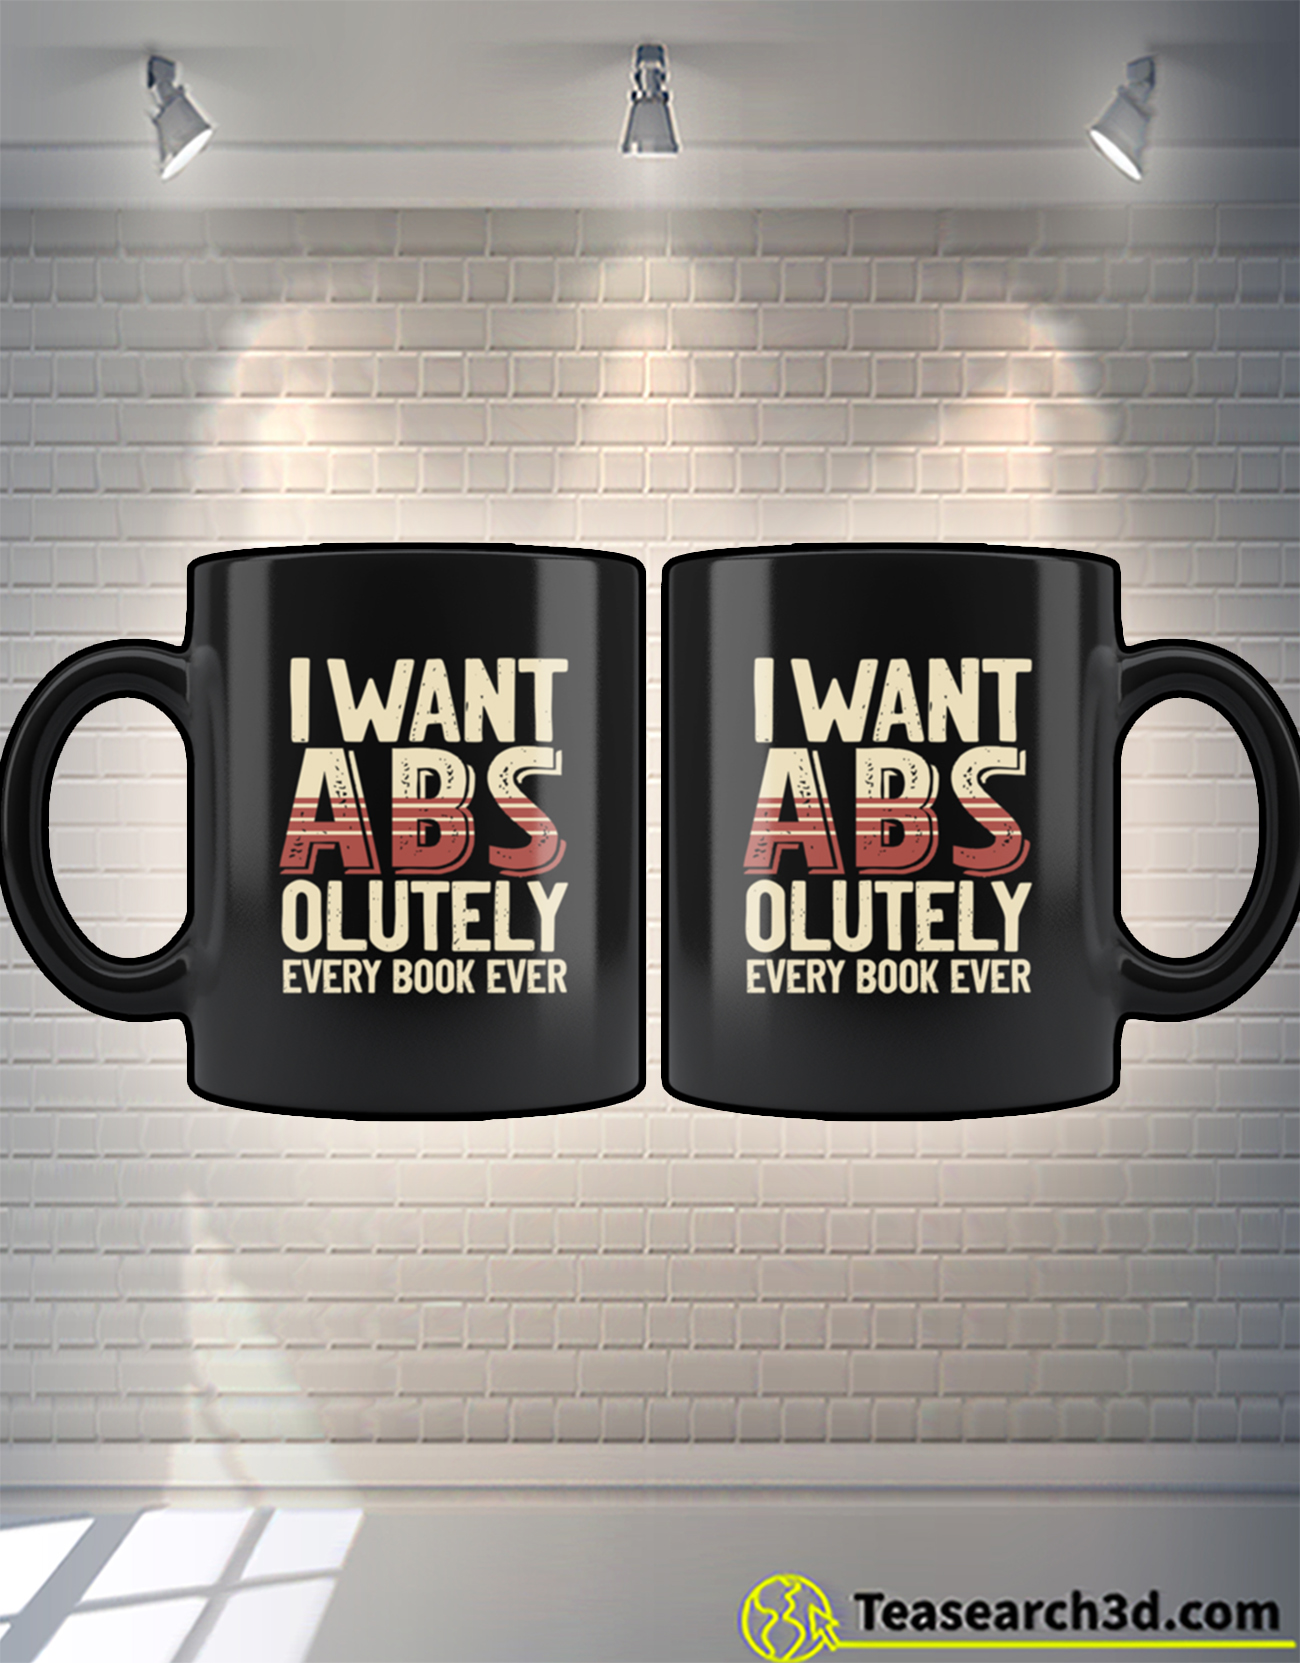 I want abs-olutely every book ever mug 2